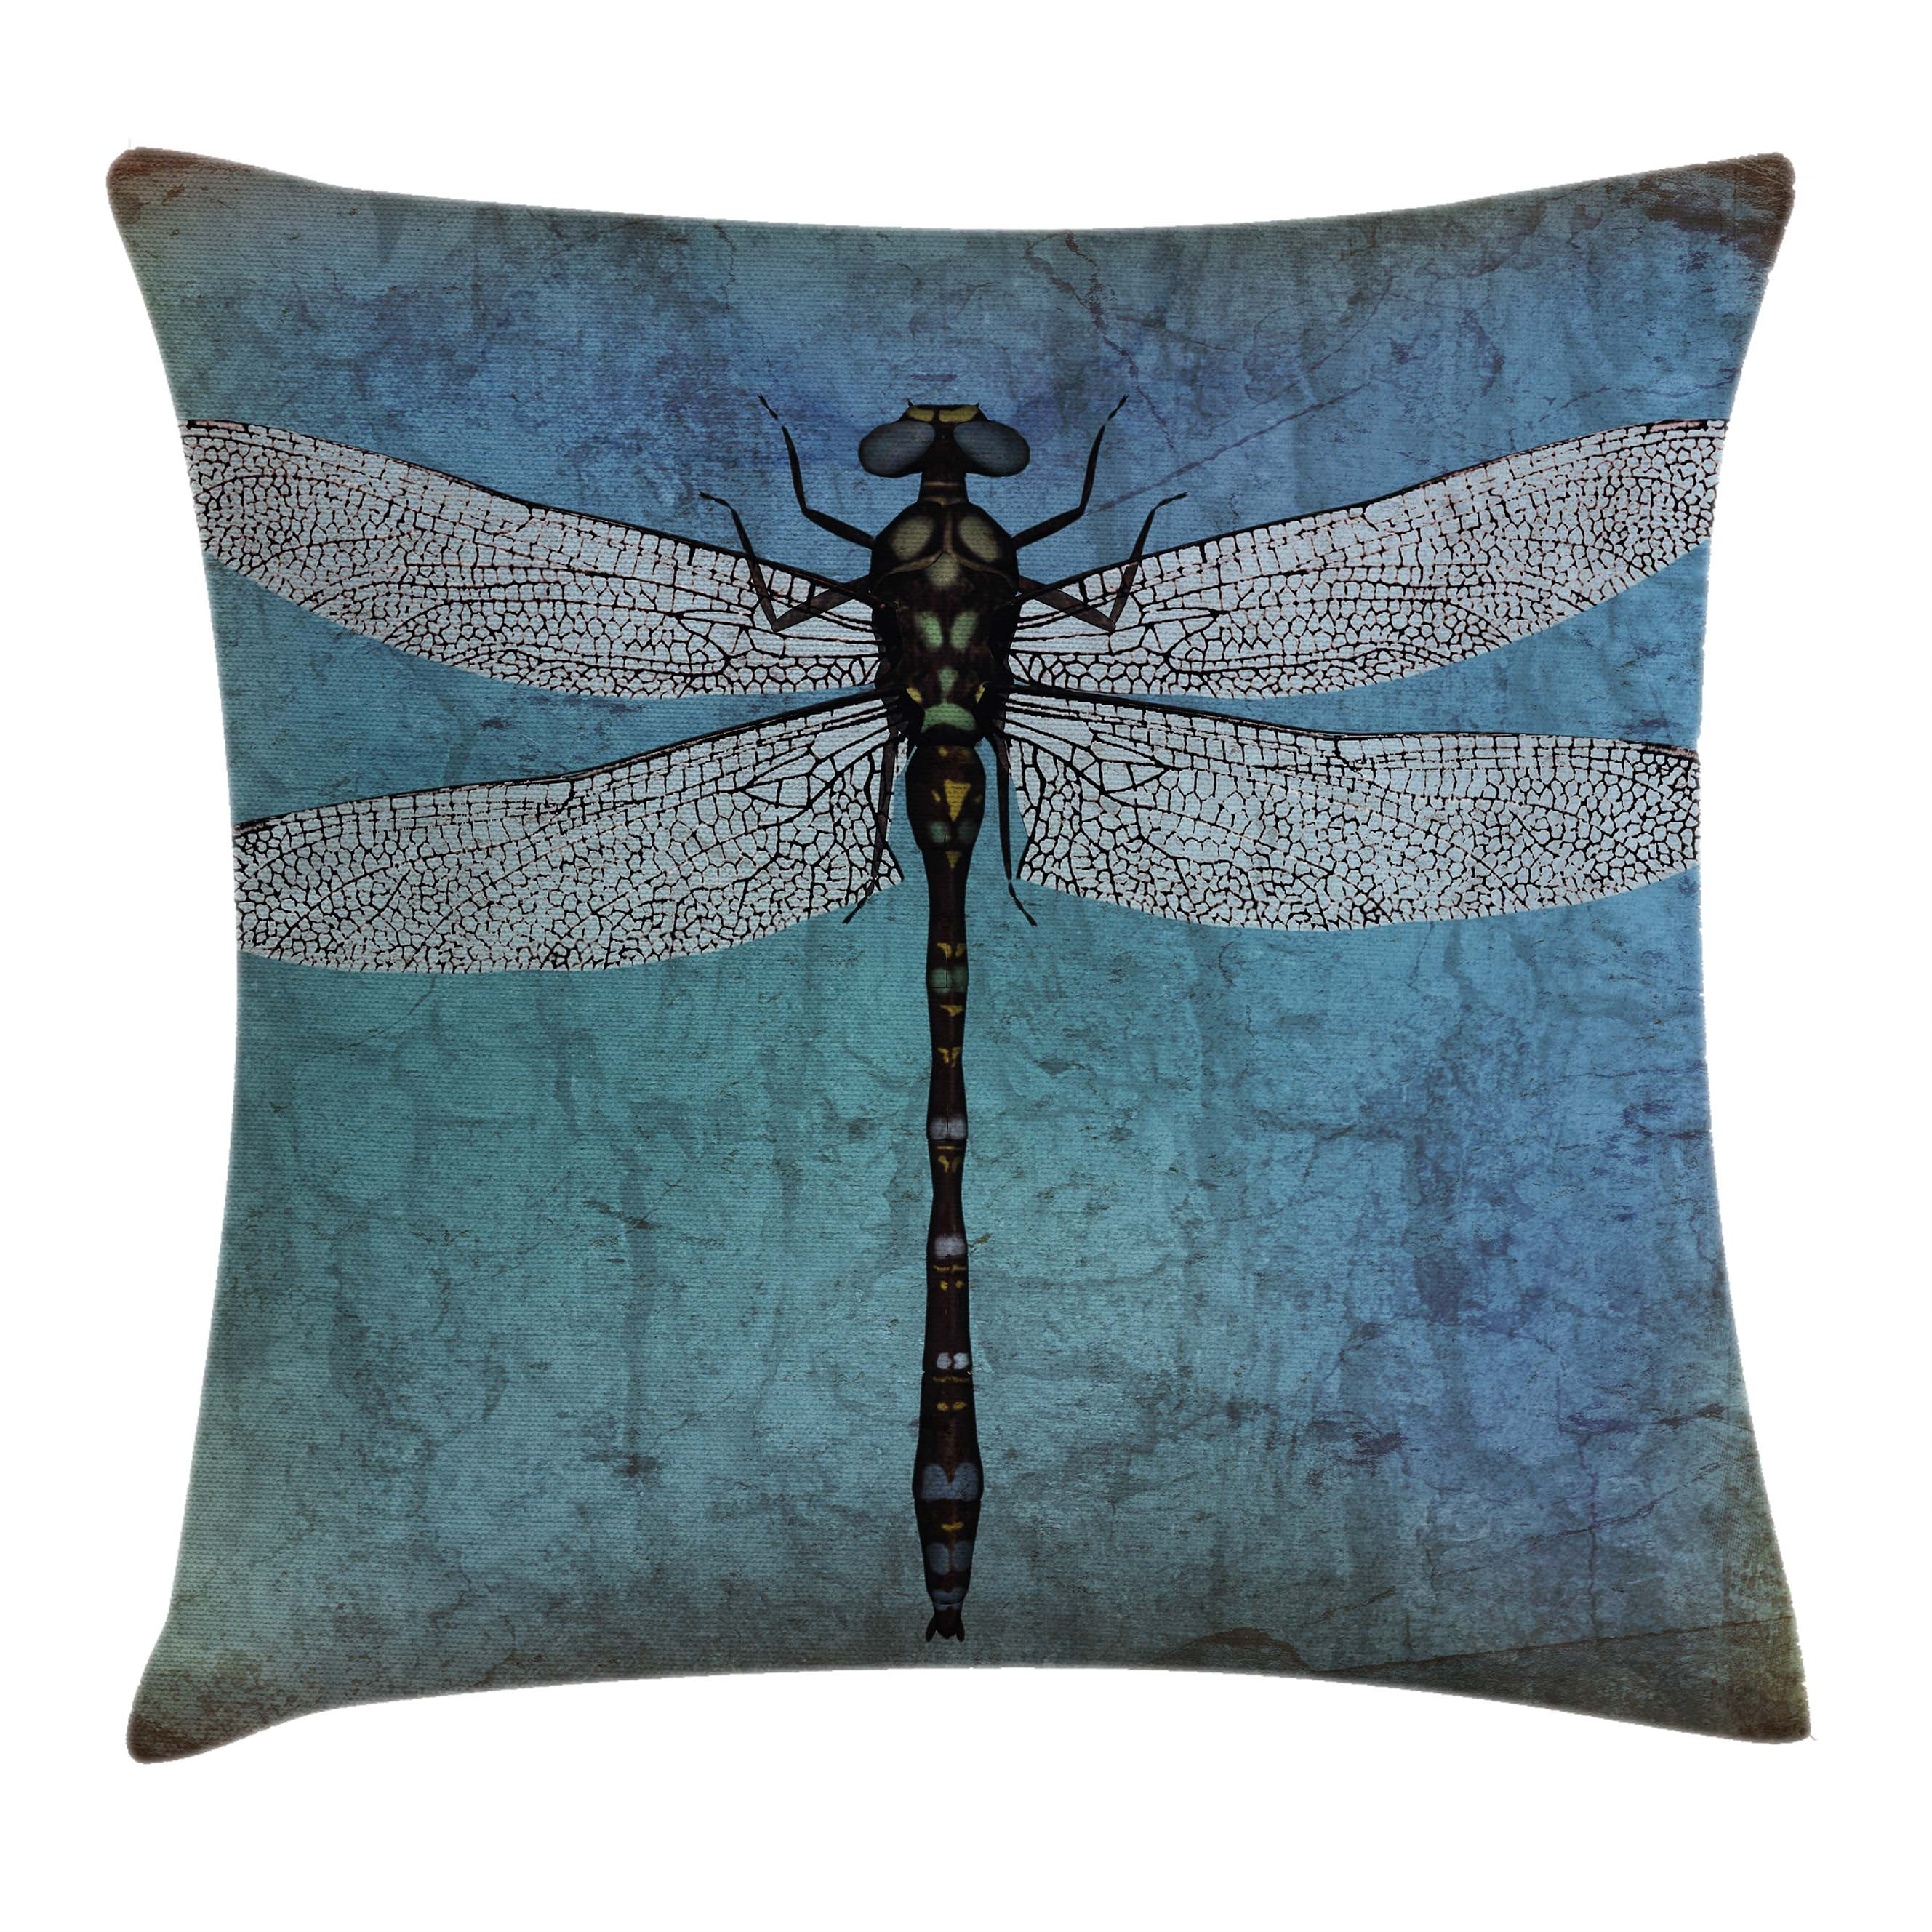 Dragonfly Throw Pillow Cushion Cover, Grunge Vintage Old Backdrop and Dragonfly Bug Ombre Image, Decorative Square Accent Pillow Case, 16 X 16 Inches, Dark Blue Turquoise and Black, by Ambesonne